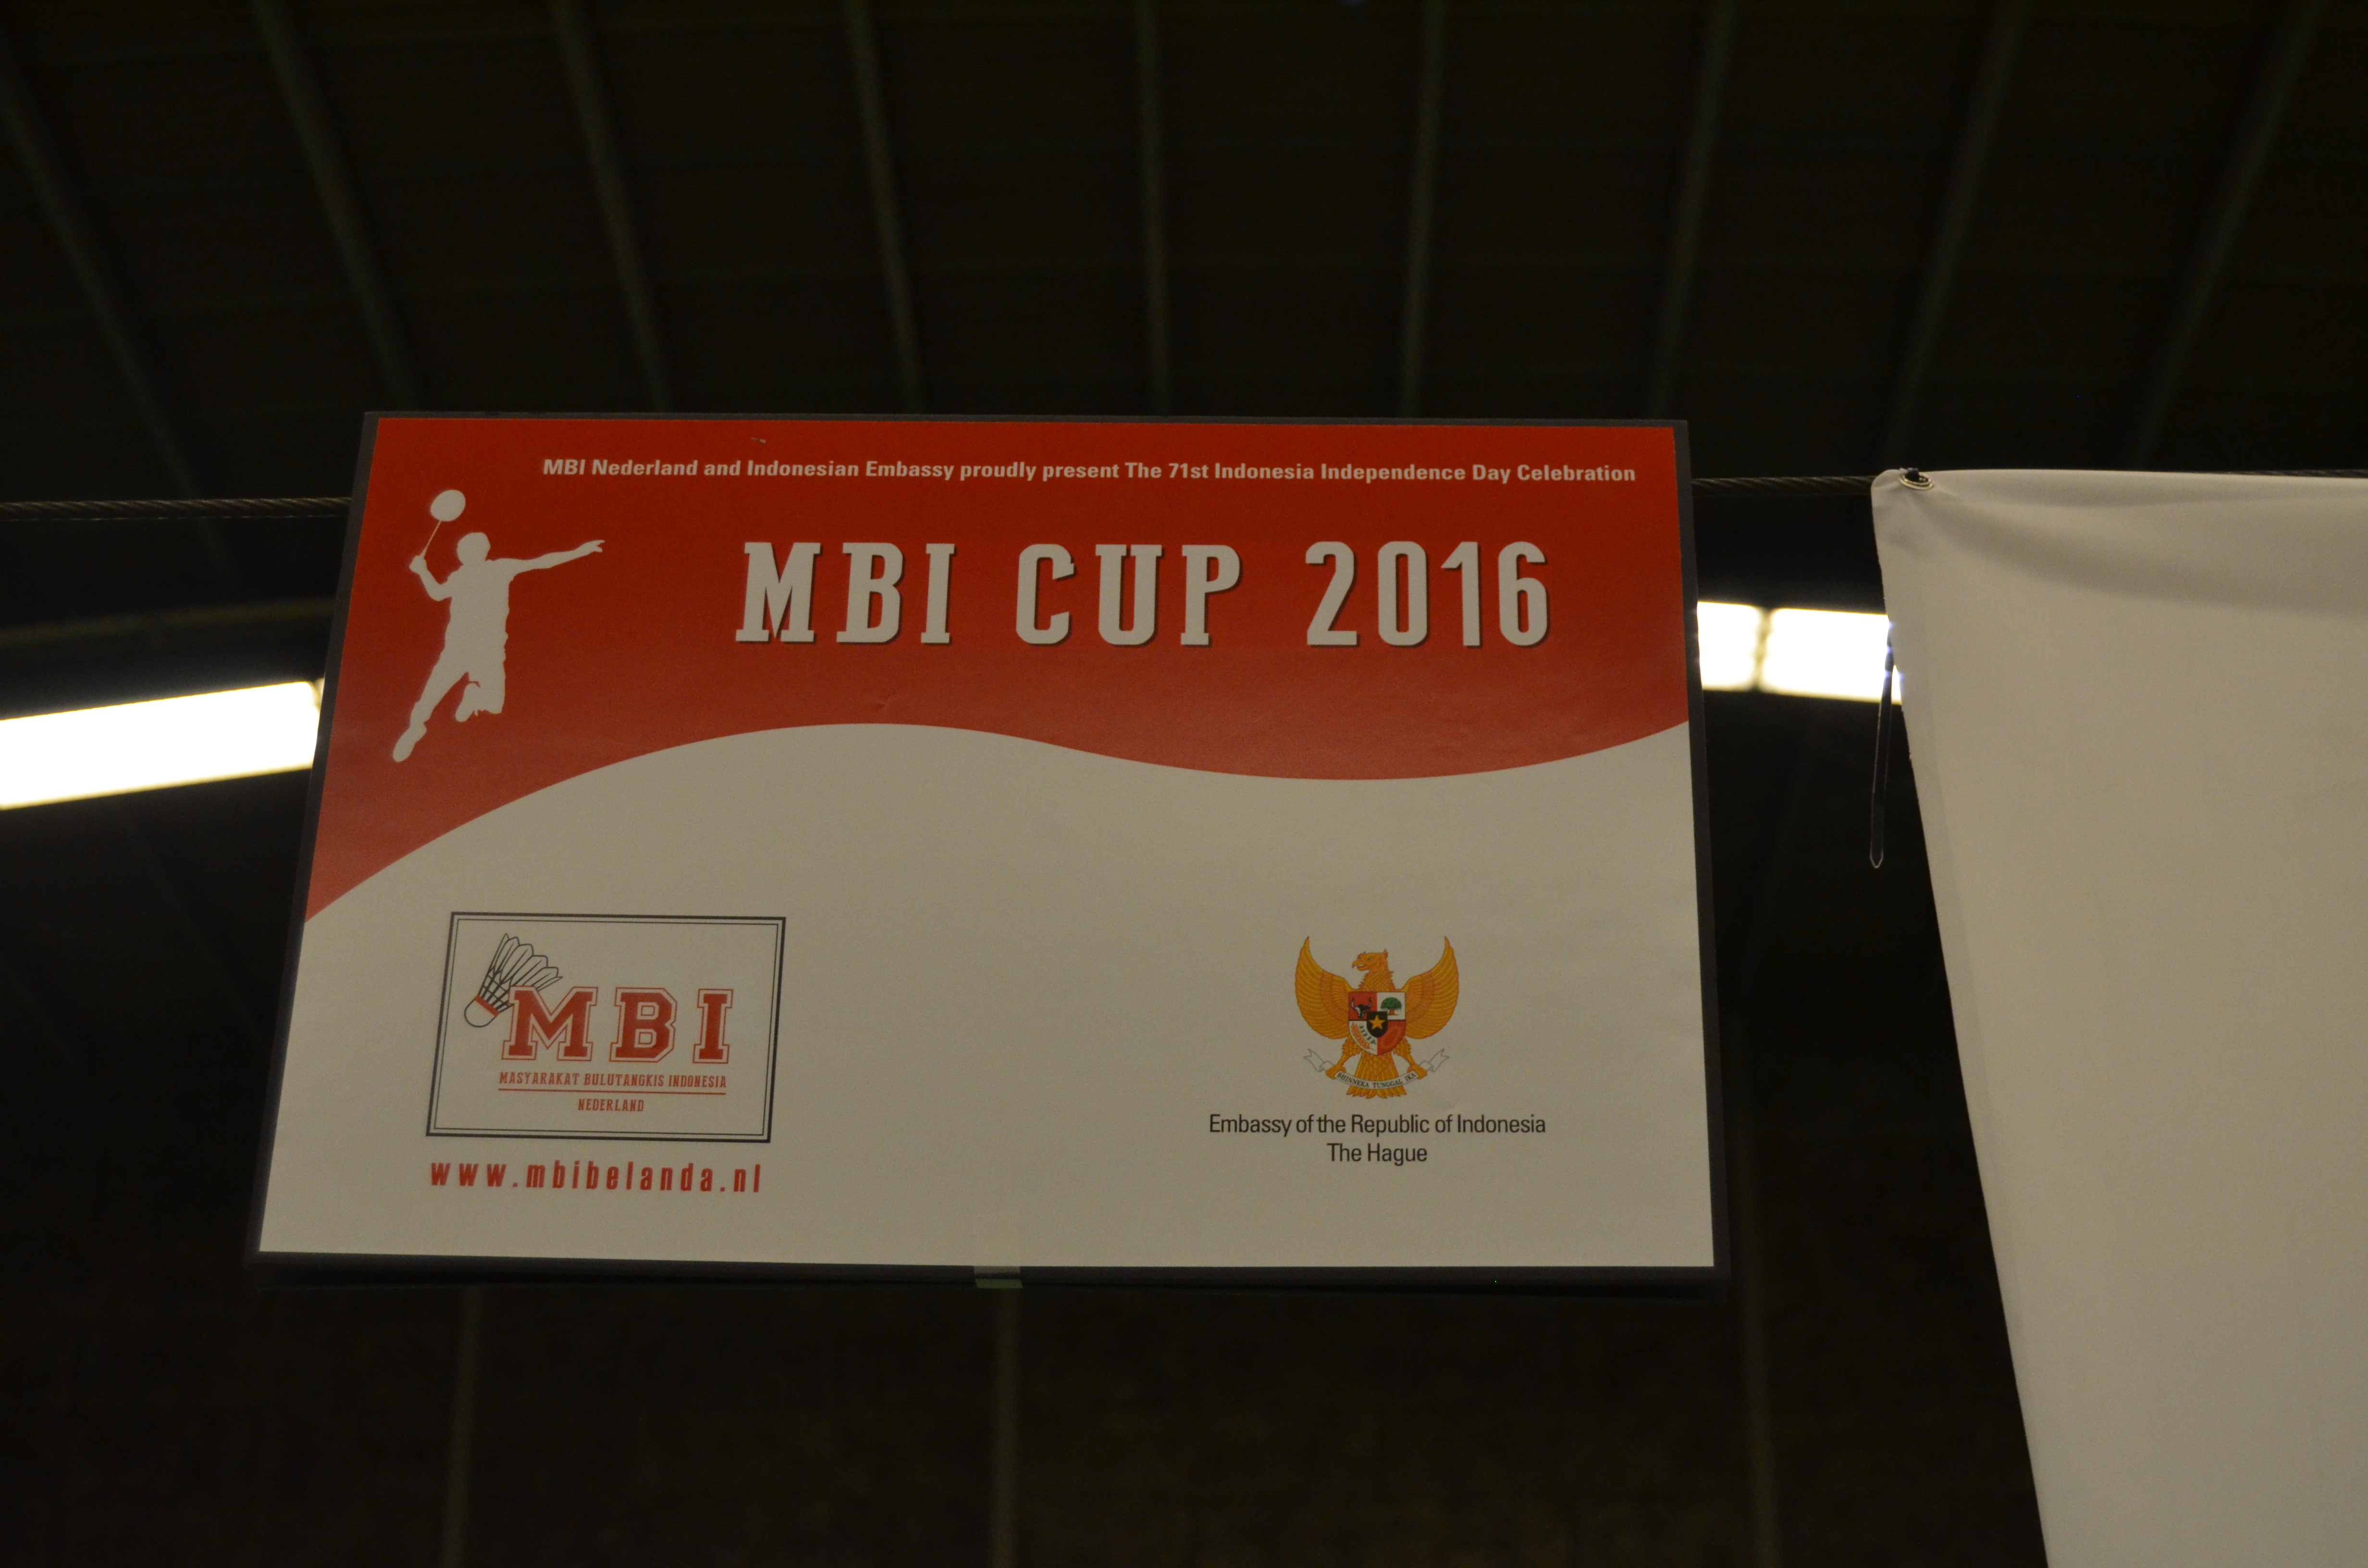 MBI cup 2016